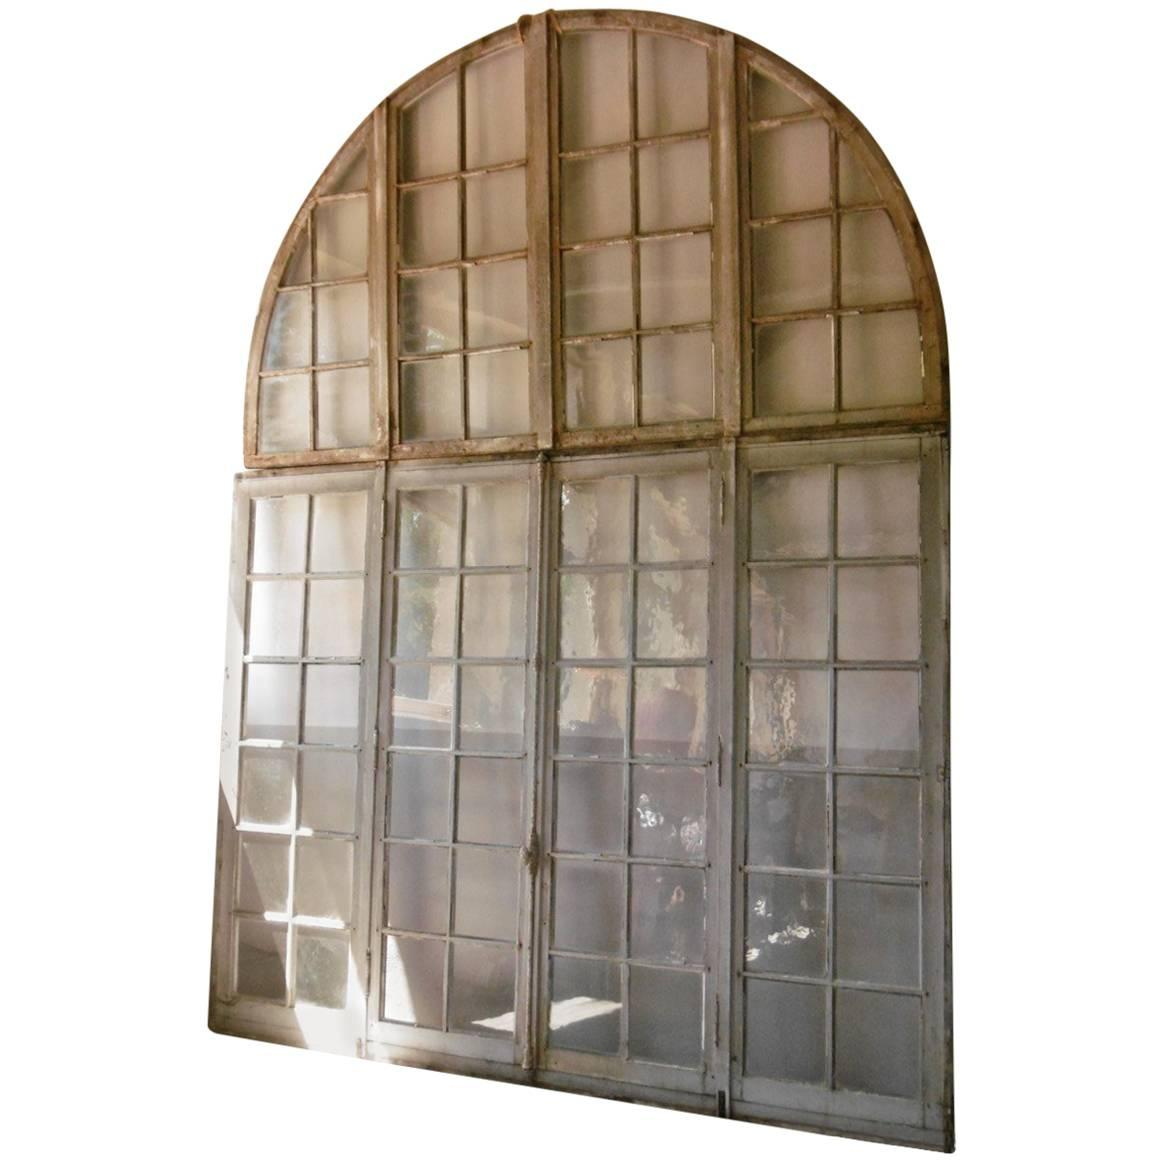 French Arcade Double Window Doors from a Burgundy Abbey Cloister For Sale  sc 1 st  1stDibs & French Arcade Double Window Doors from a Burgundy Abbey Cloister For ...